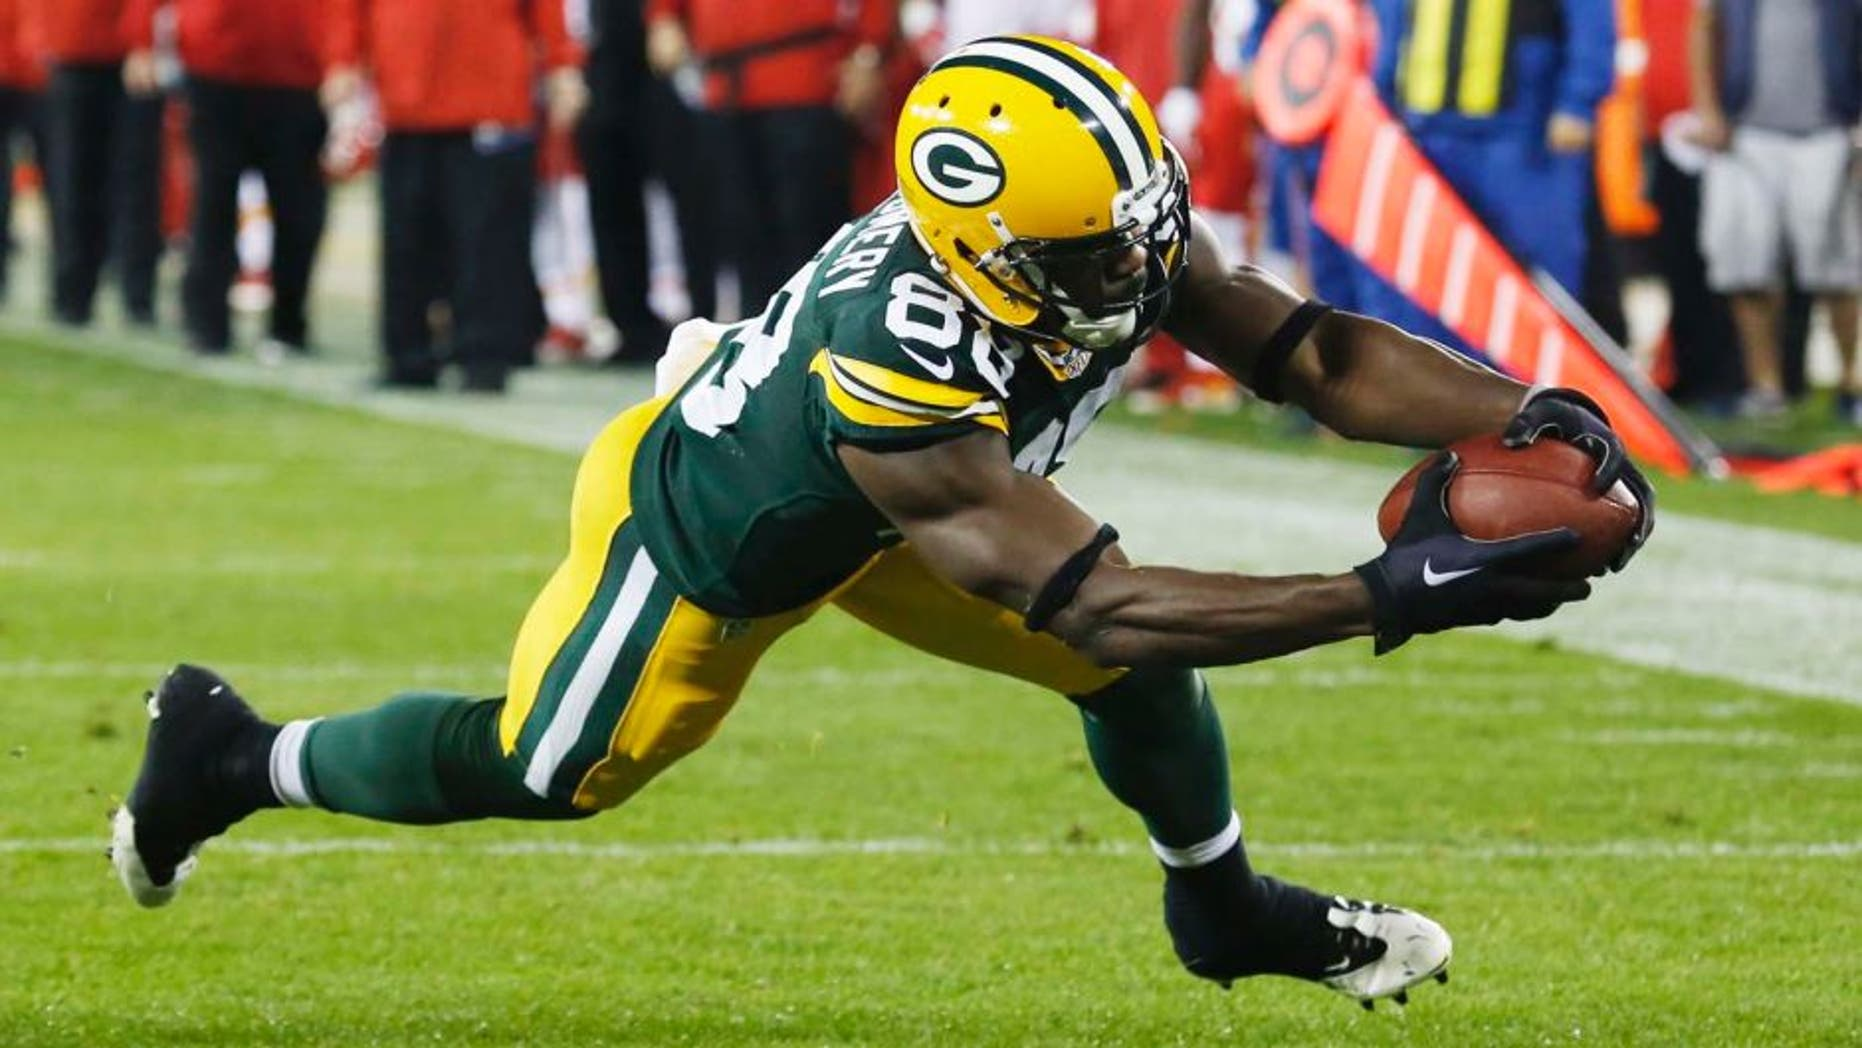 Monday, Sept. 28: The Green Bay Packers' Ty Montgomery catches a touchdown pass during the first half against the Kansas City Chiefs.